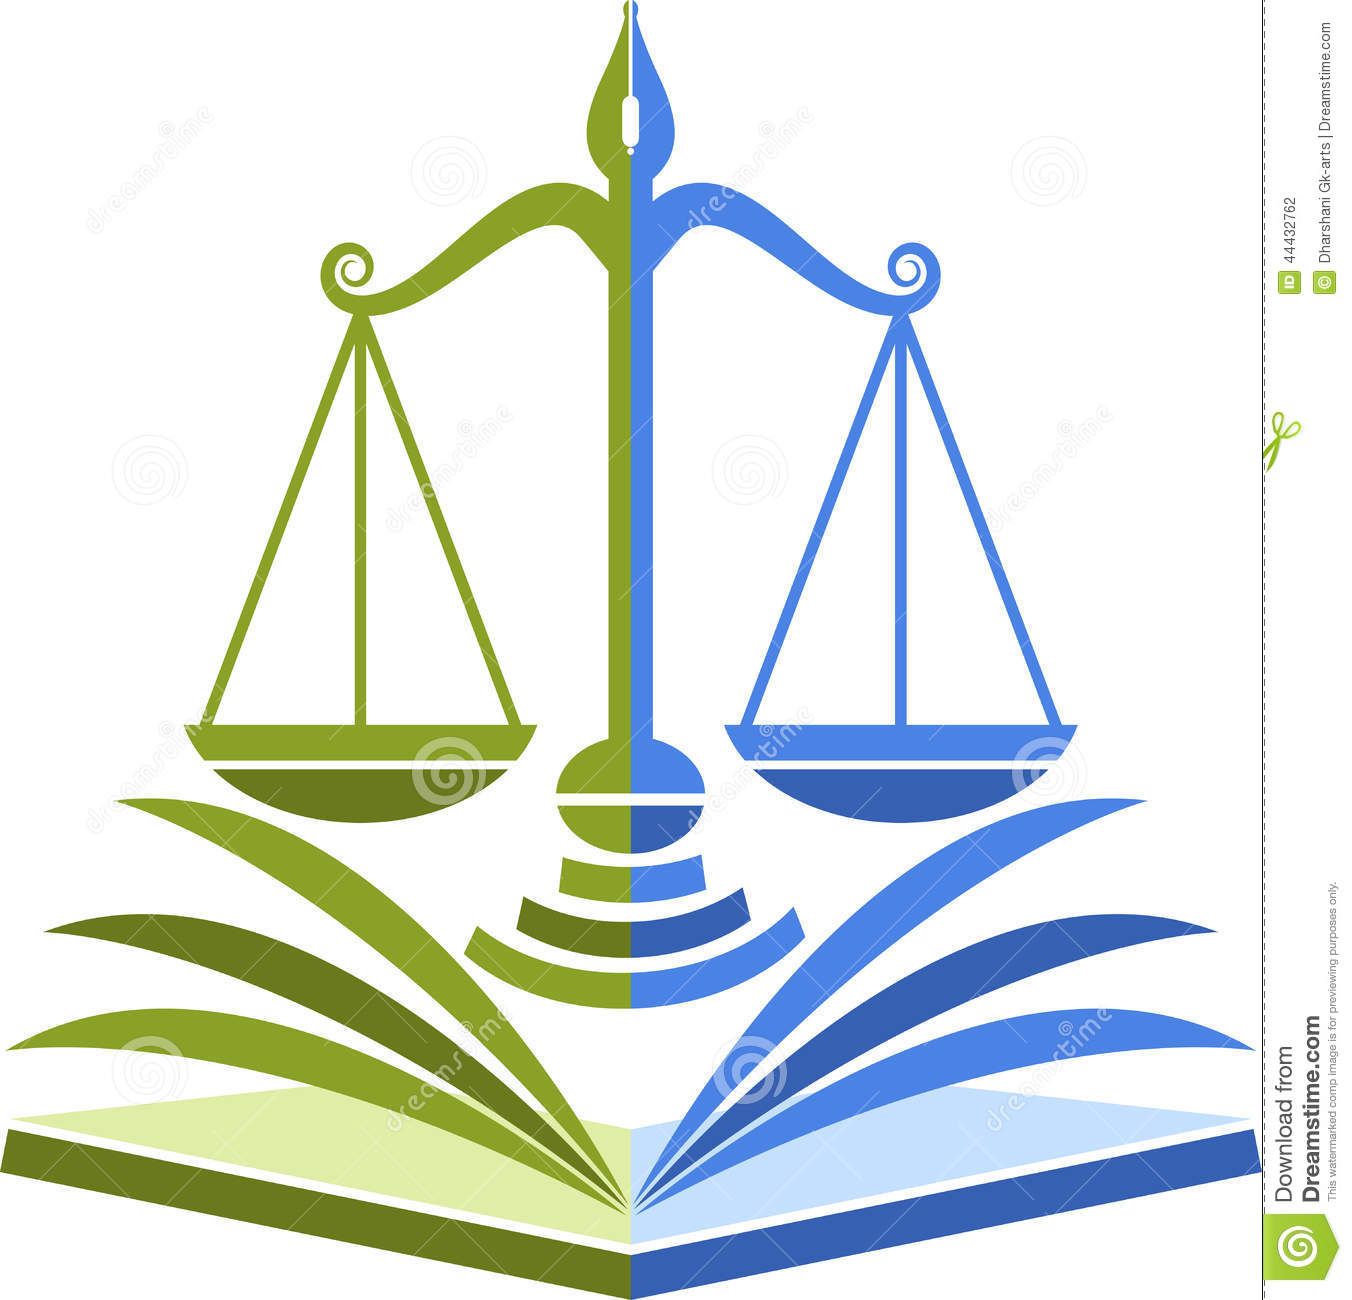 Law education logo stock vector. Image of icon ...